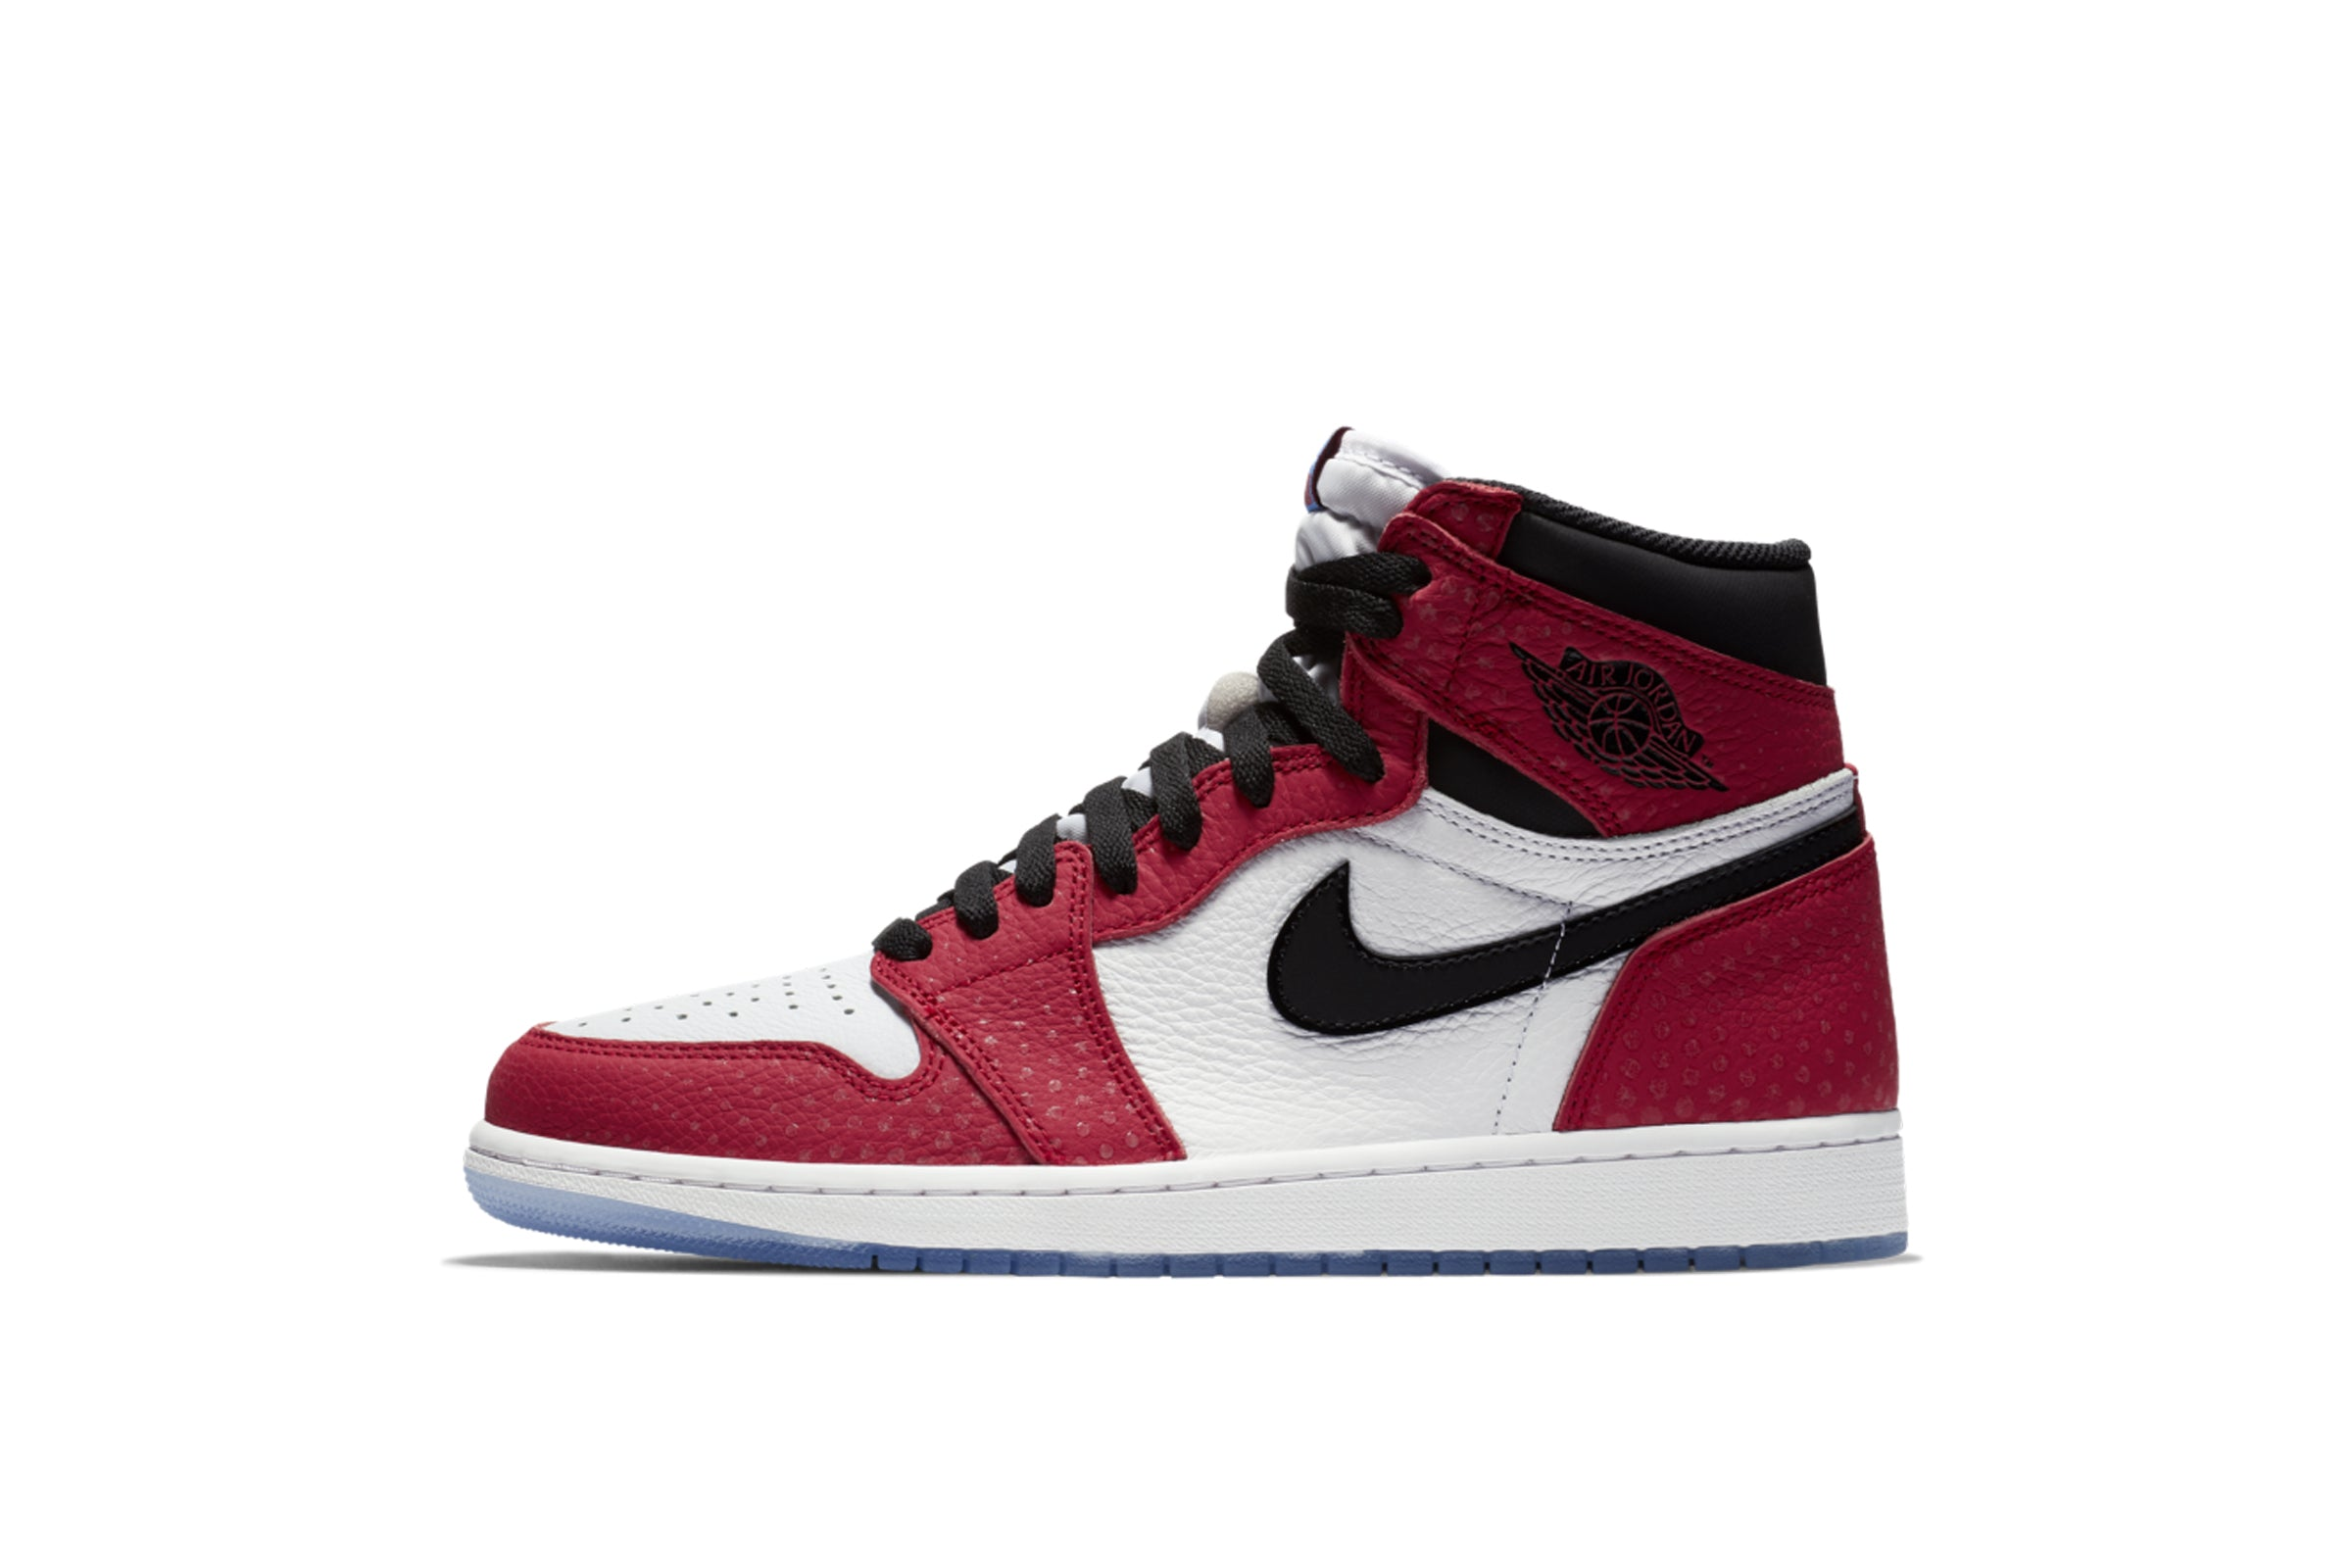 on sale f8cb6 31ec5 Nike Air Jordan 1 Retro High OG NRG